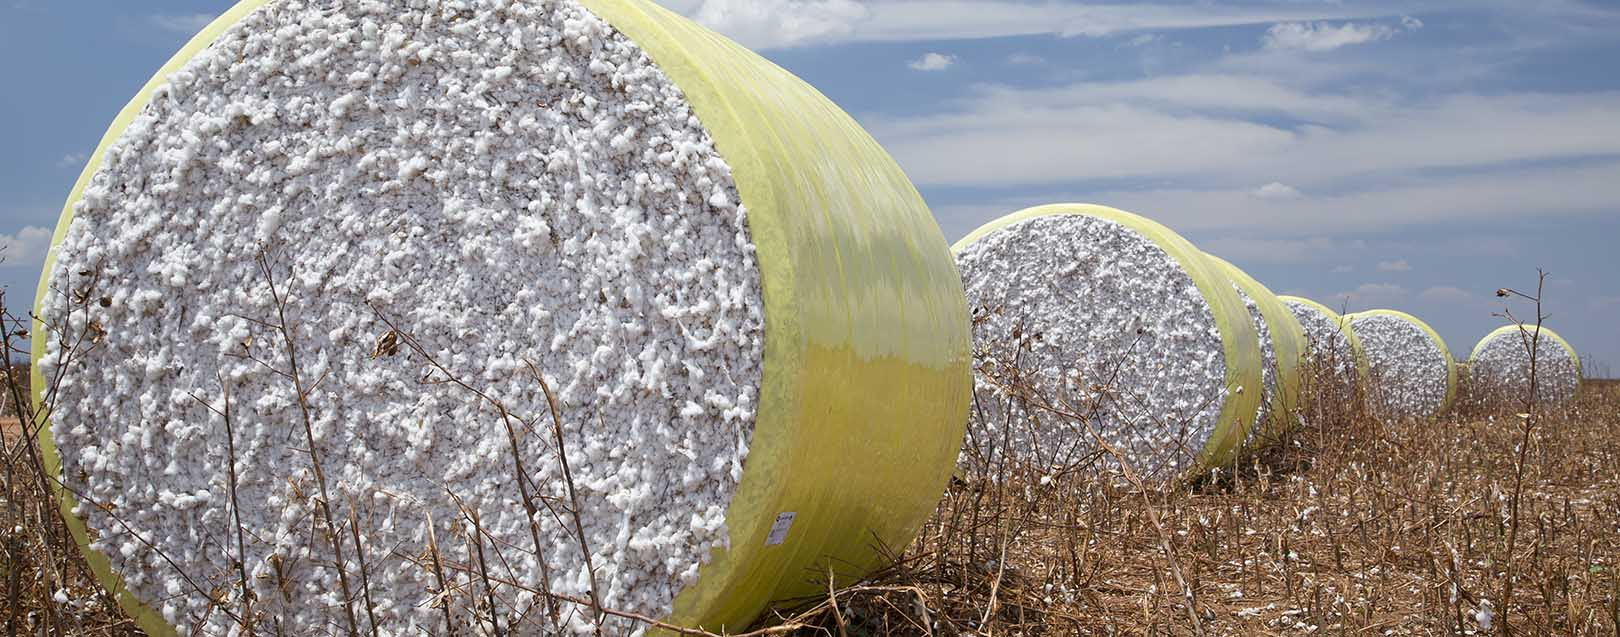 India's cotton prodn to be lower in 2015-16: CAI